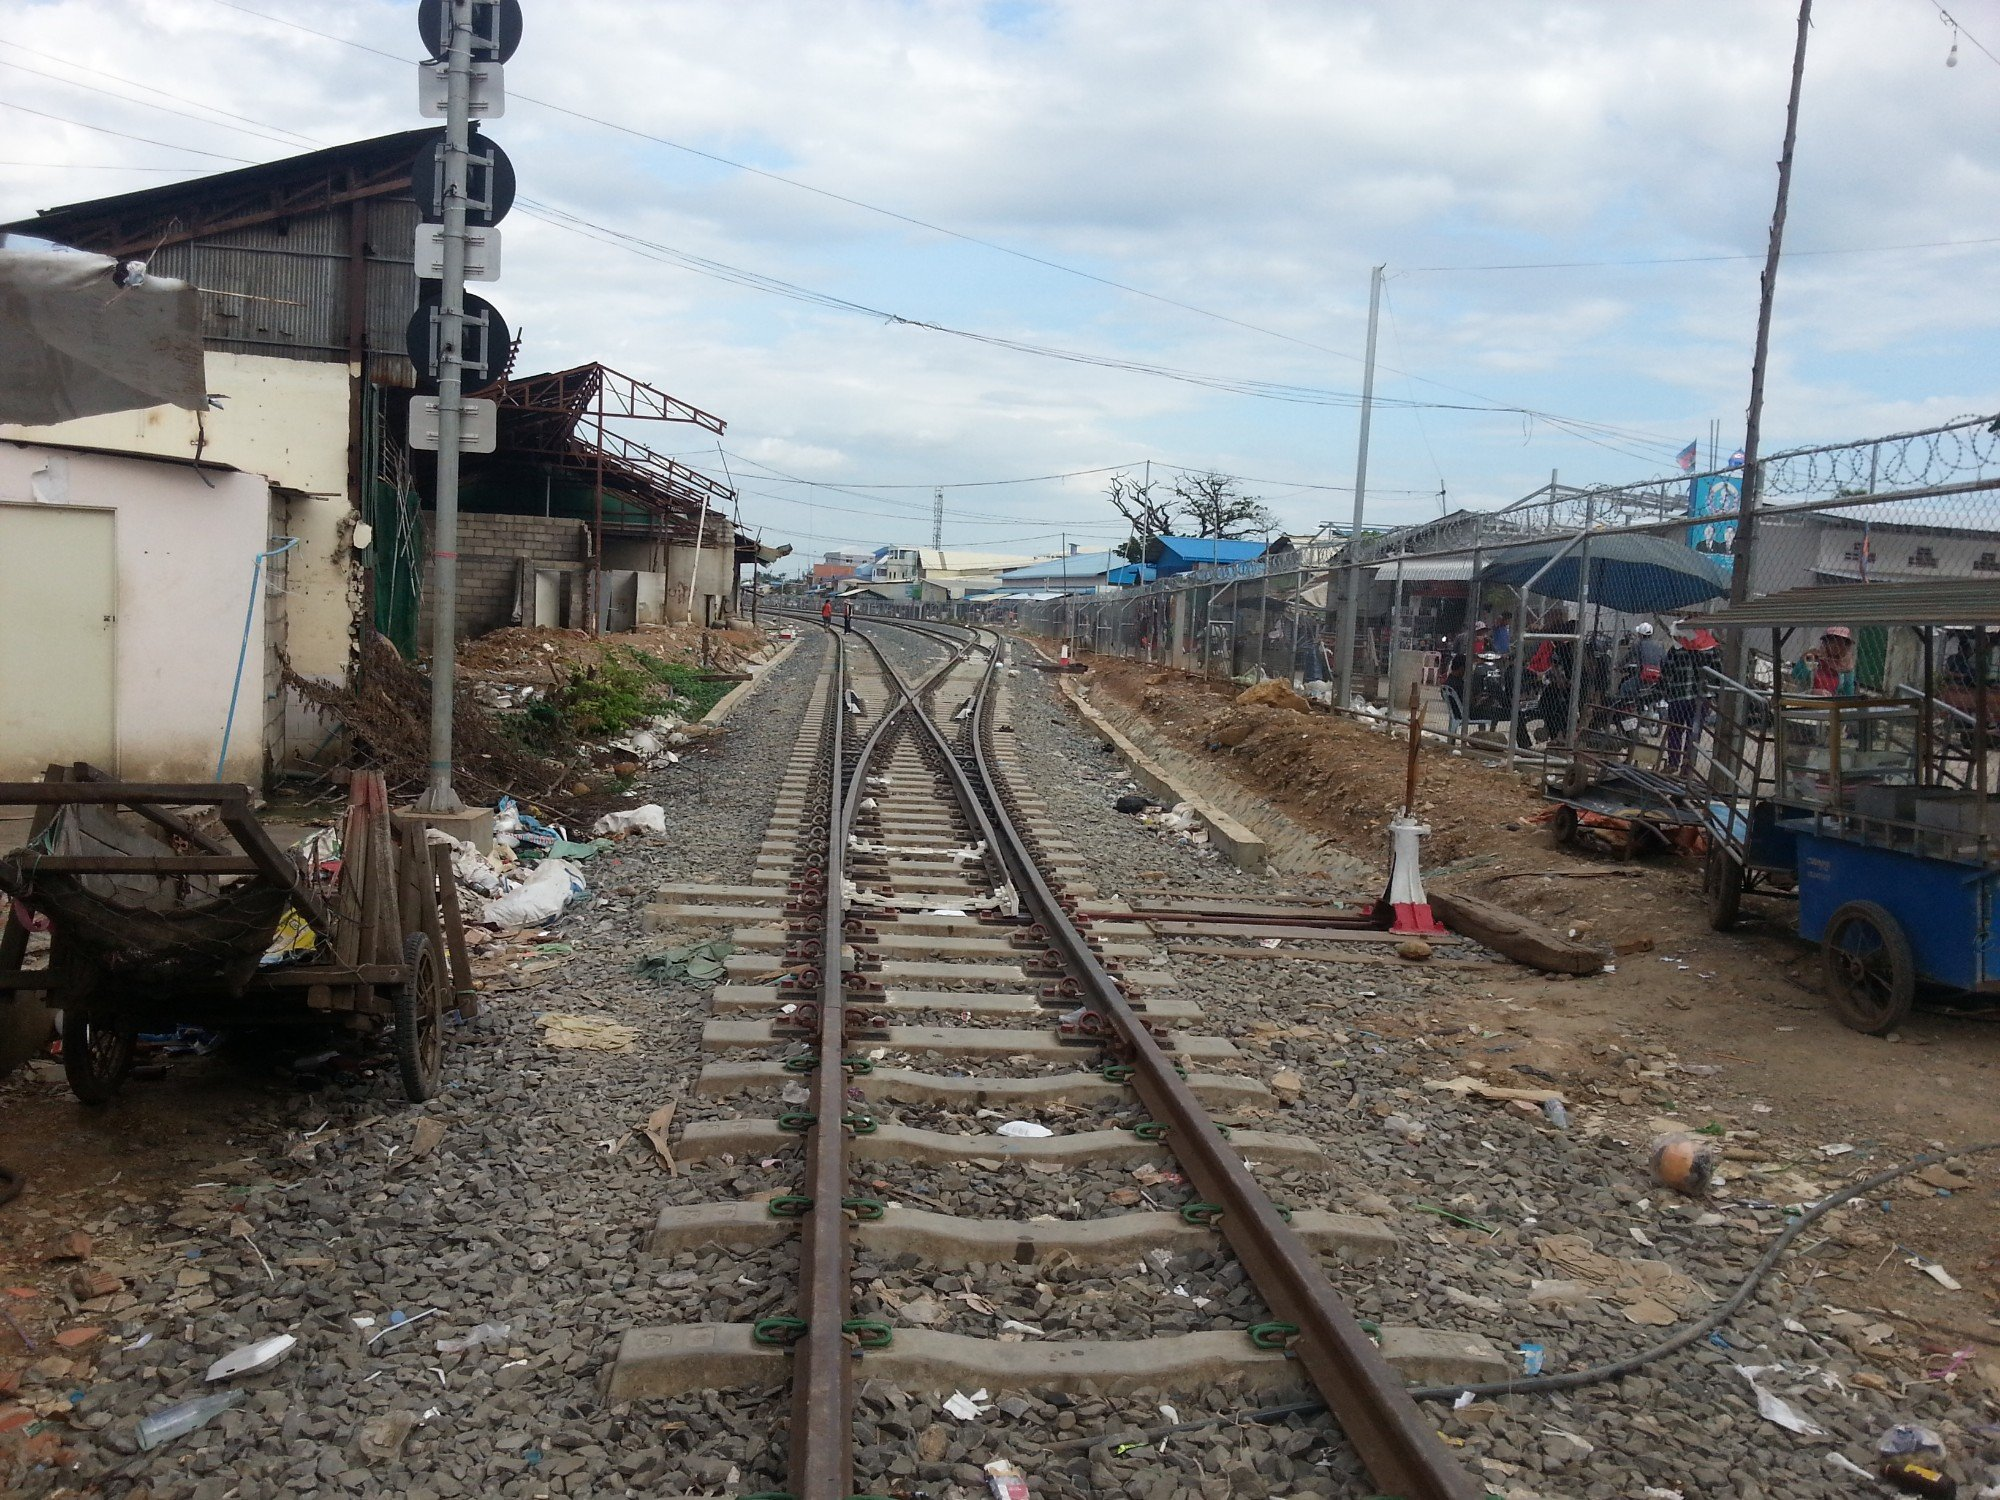 Rail link between Ban Khlong Luek in Thailand and Poipet in Cambodia